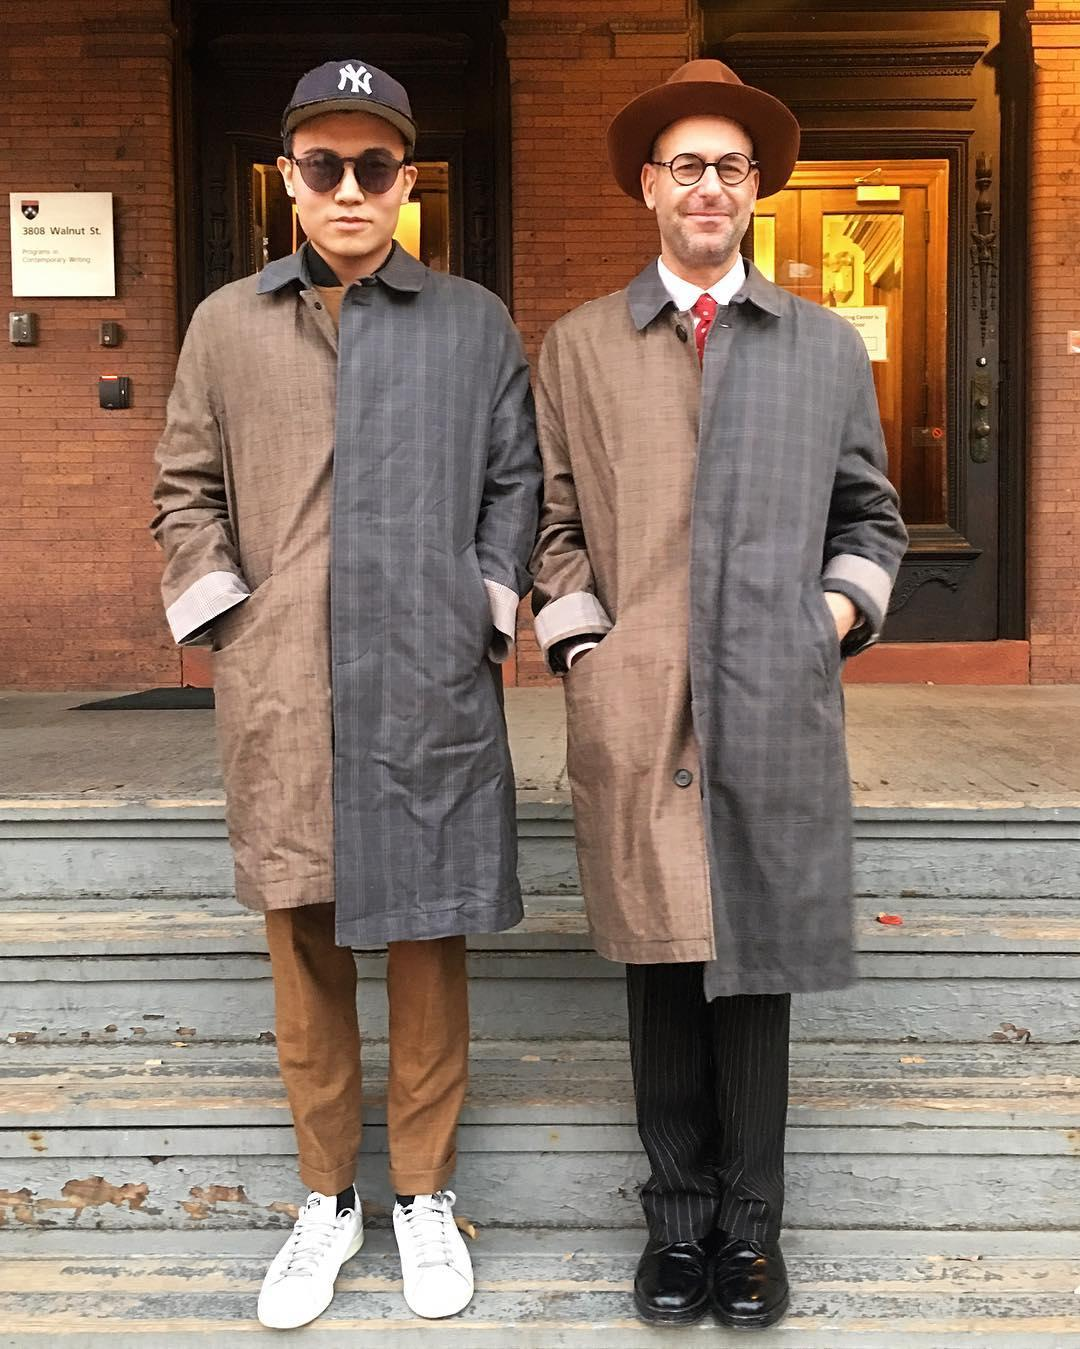 Goldsmith and Michael Xufu Huang. Taken from Instagram @m_woods